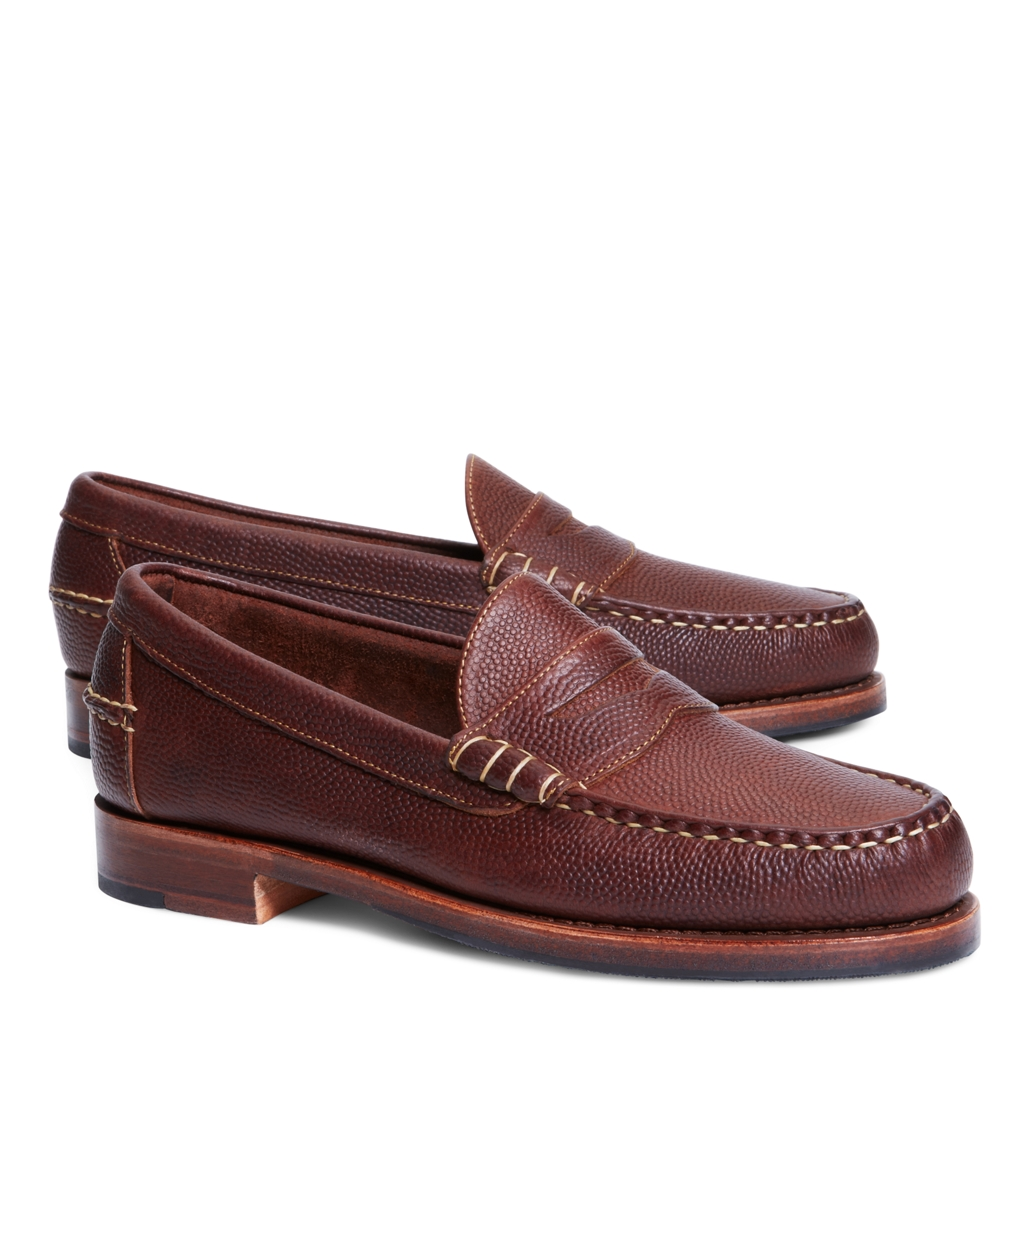 Leather Men's Loafers: bloggeri.tk - Your Online Men's Loafers Store! Get 5% in rewards with Club O! Coupon Activated! Skip to main content FREE Shipping & Easy Returns* Kenneth Cole New York Slip On Mens Brown Leather Casual Dress Loafers Shoes. New Arrival. 2 Day Delivery.